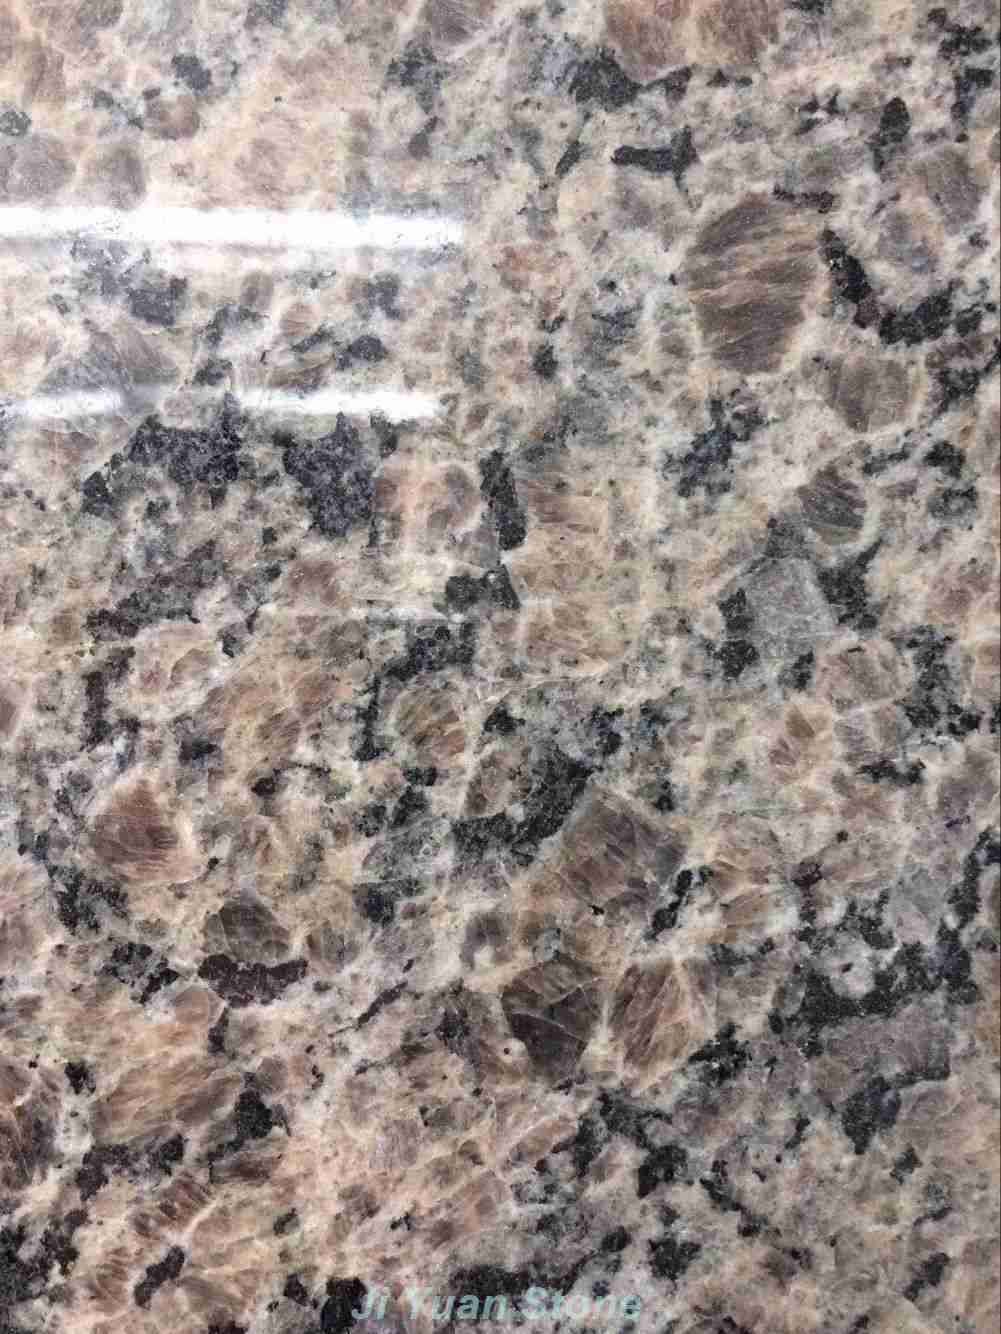 Caledonia granite,new caledonia granite,caledonia granite countertop,new caledonia granite white cabinets,caledonia granite kitchen,caledonia granite color